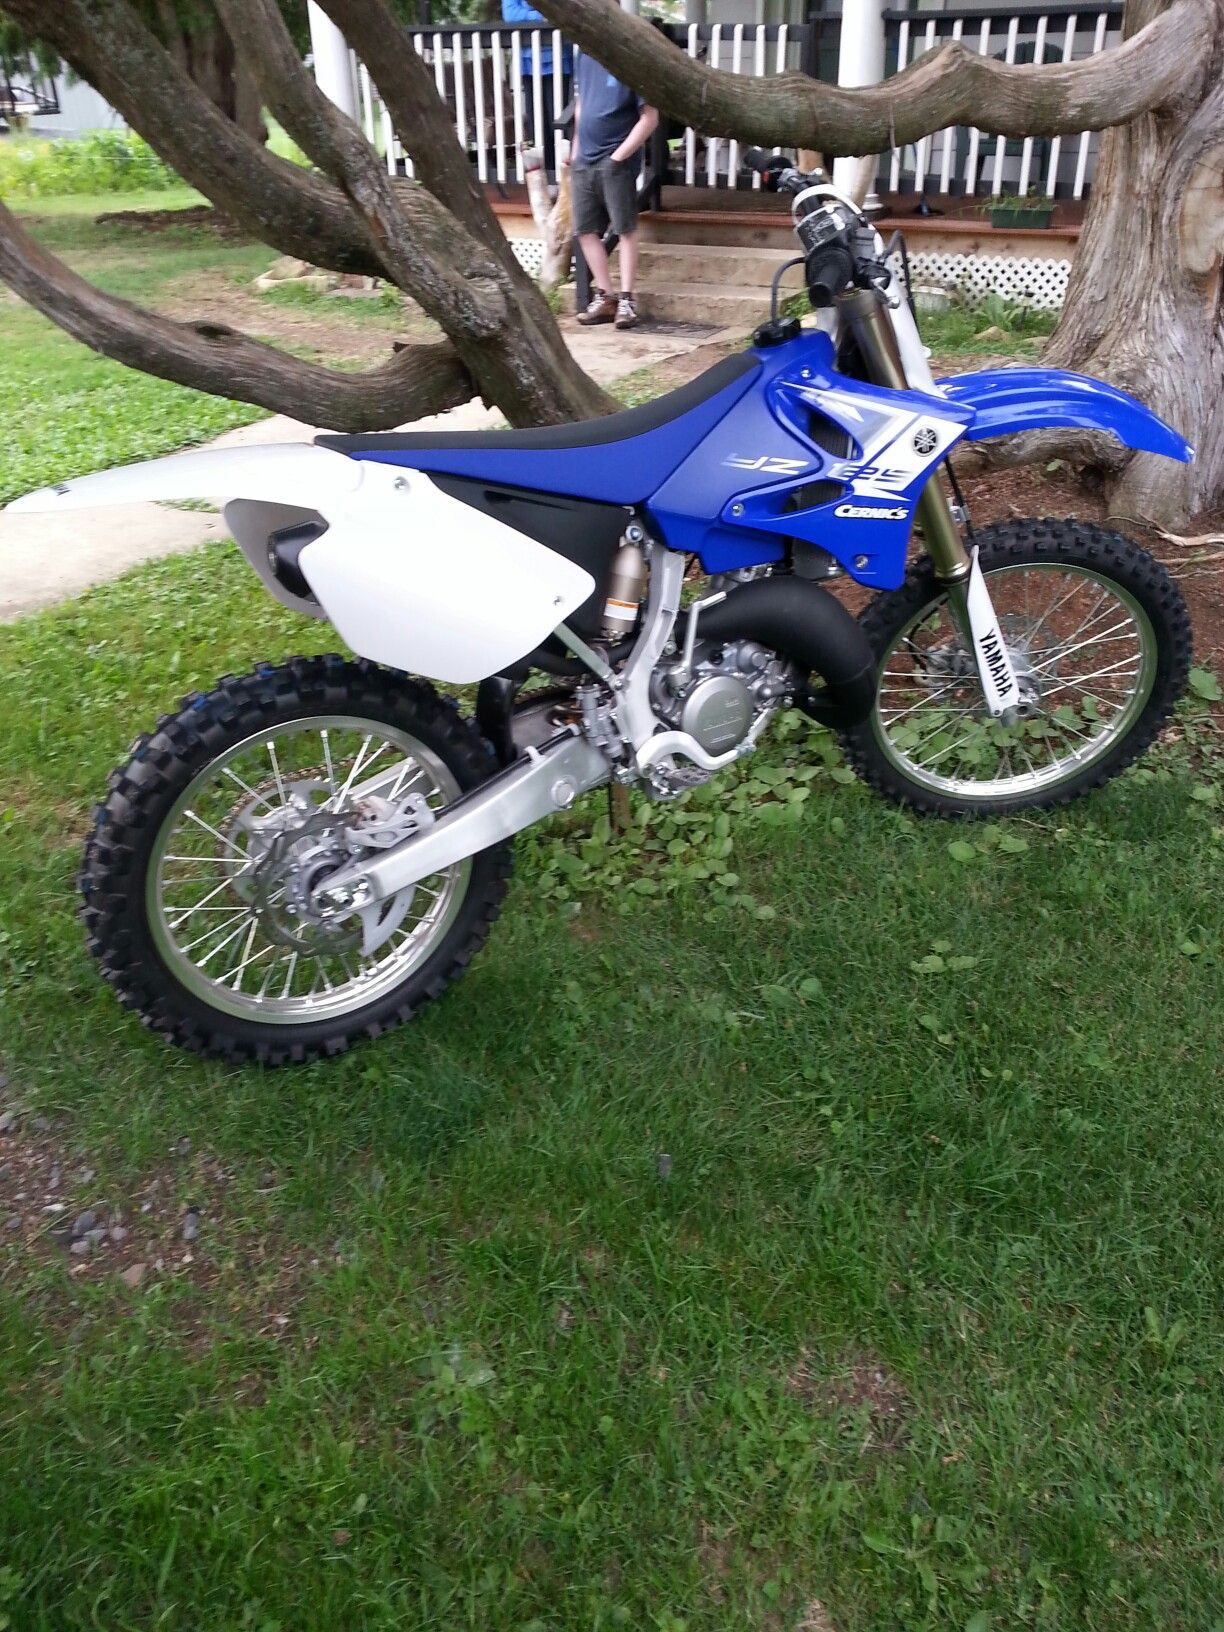 2013 Yz 125 My Dream Bike I Had Miss It So Much Dirtbikes Bike Atv